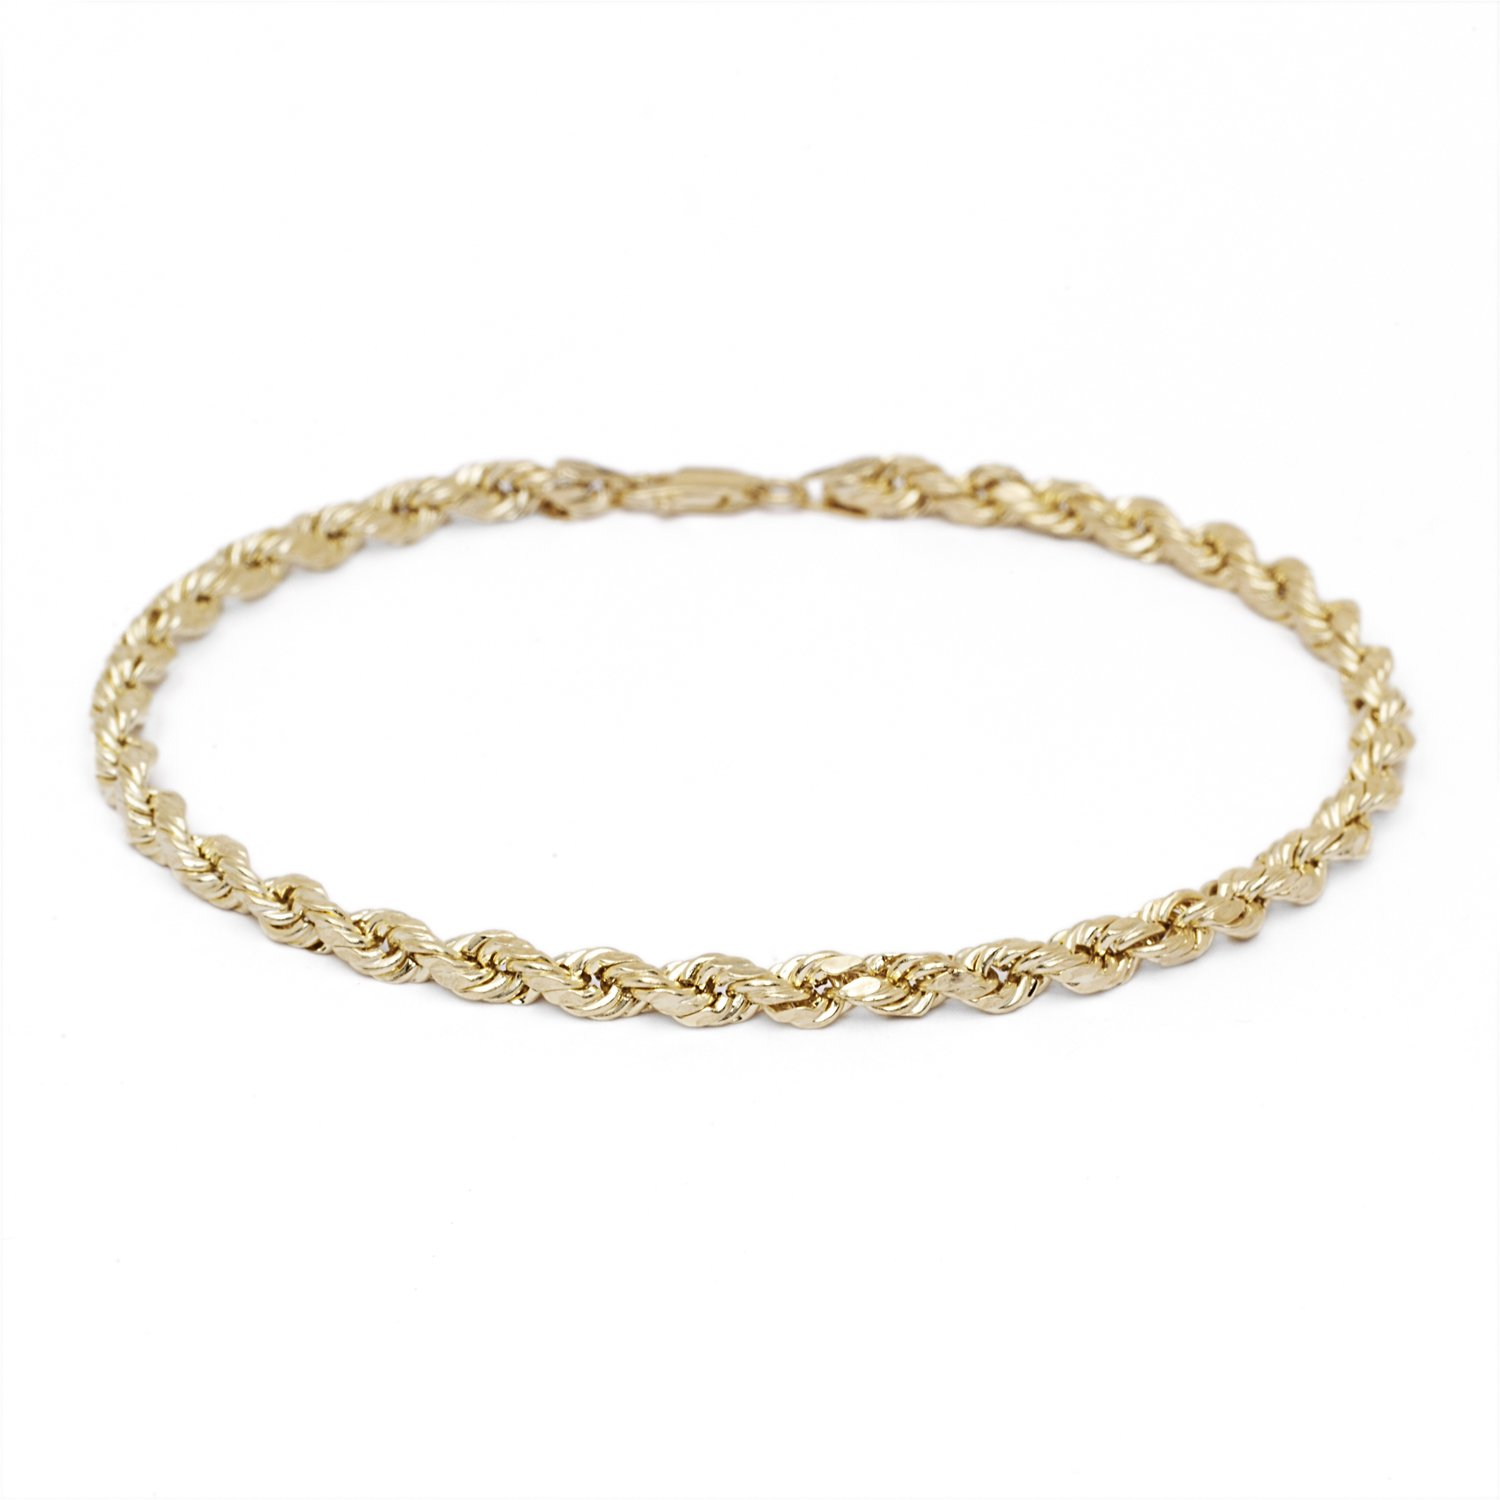 10 Inch 10k Fine Gold Solid Diamond Cut Rope Chain Bracelet and Anklet for Men and Women, 5mm (0.2'')